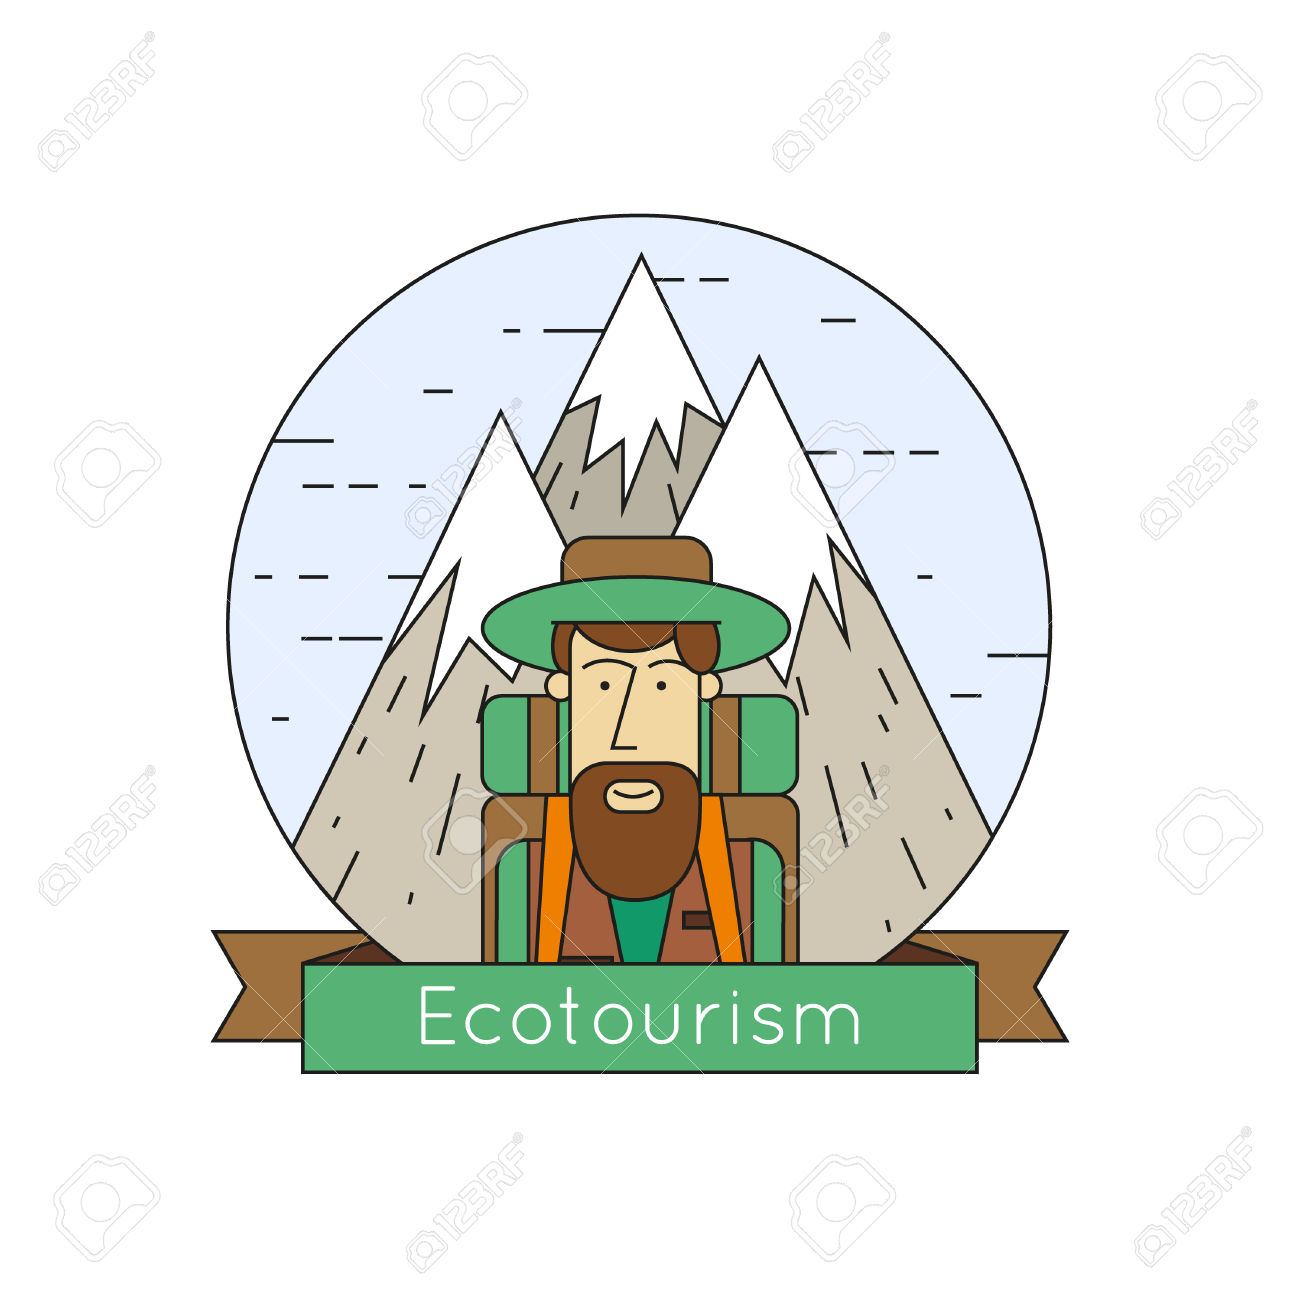 Eco Tourism clipart #1, Download drawings